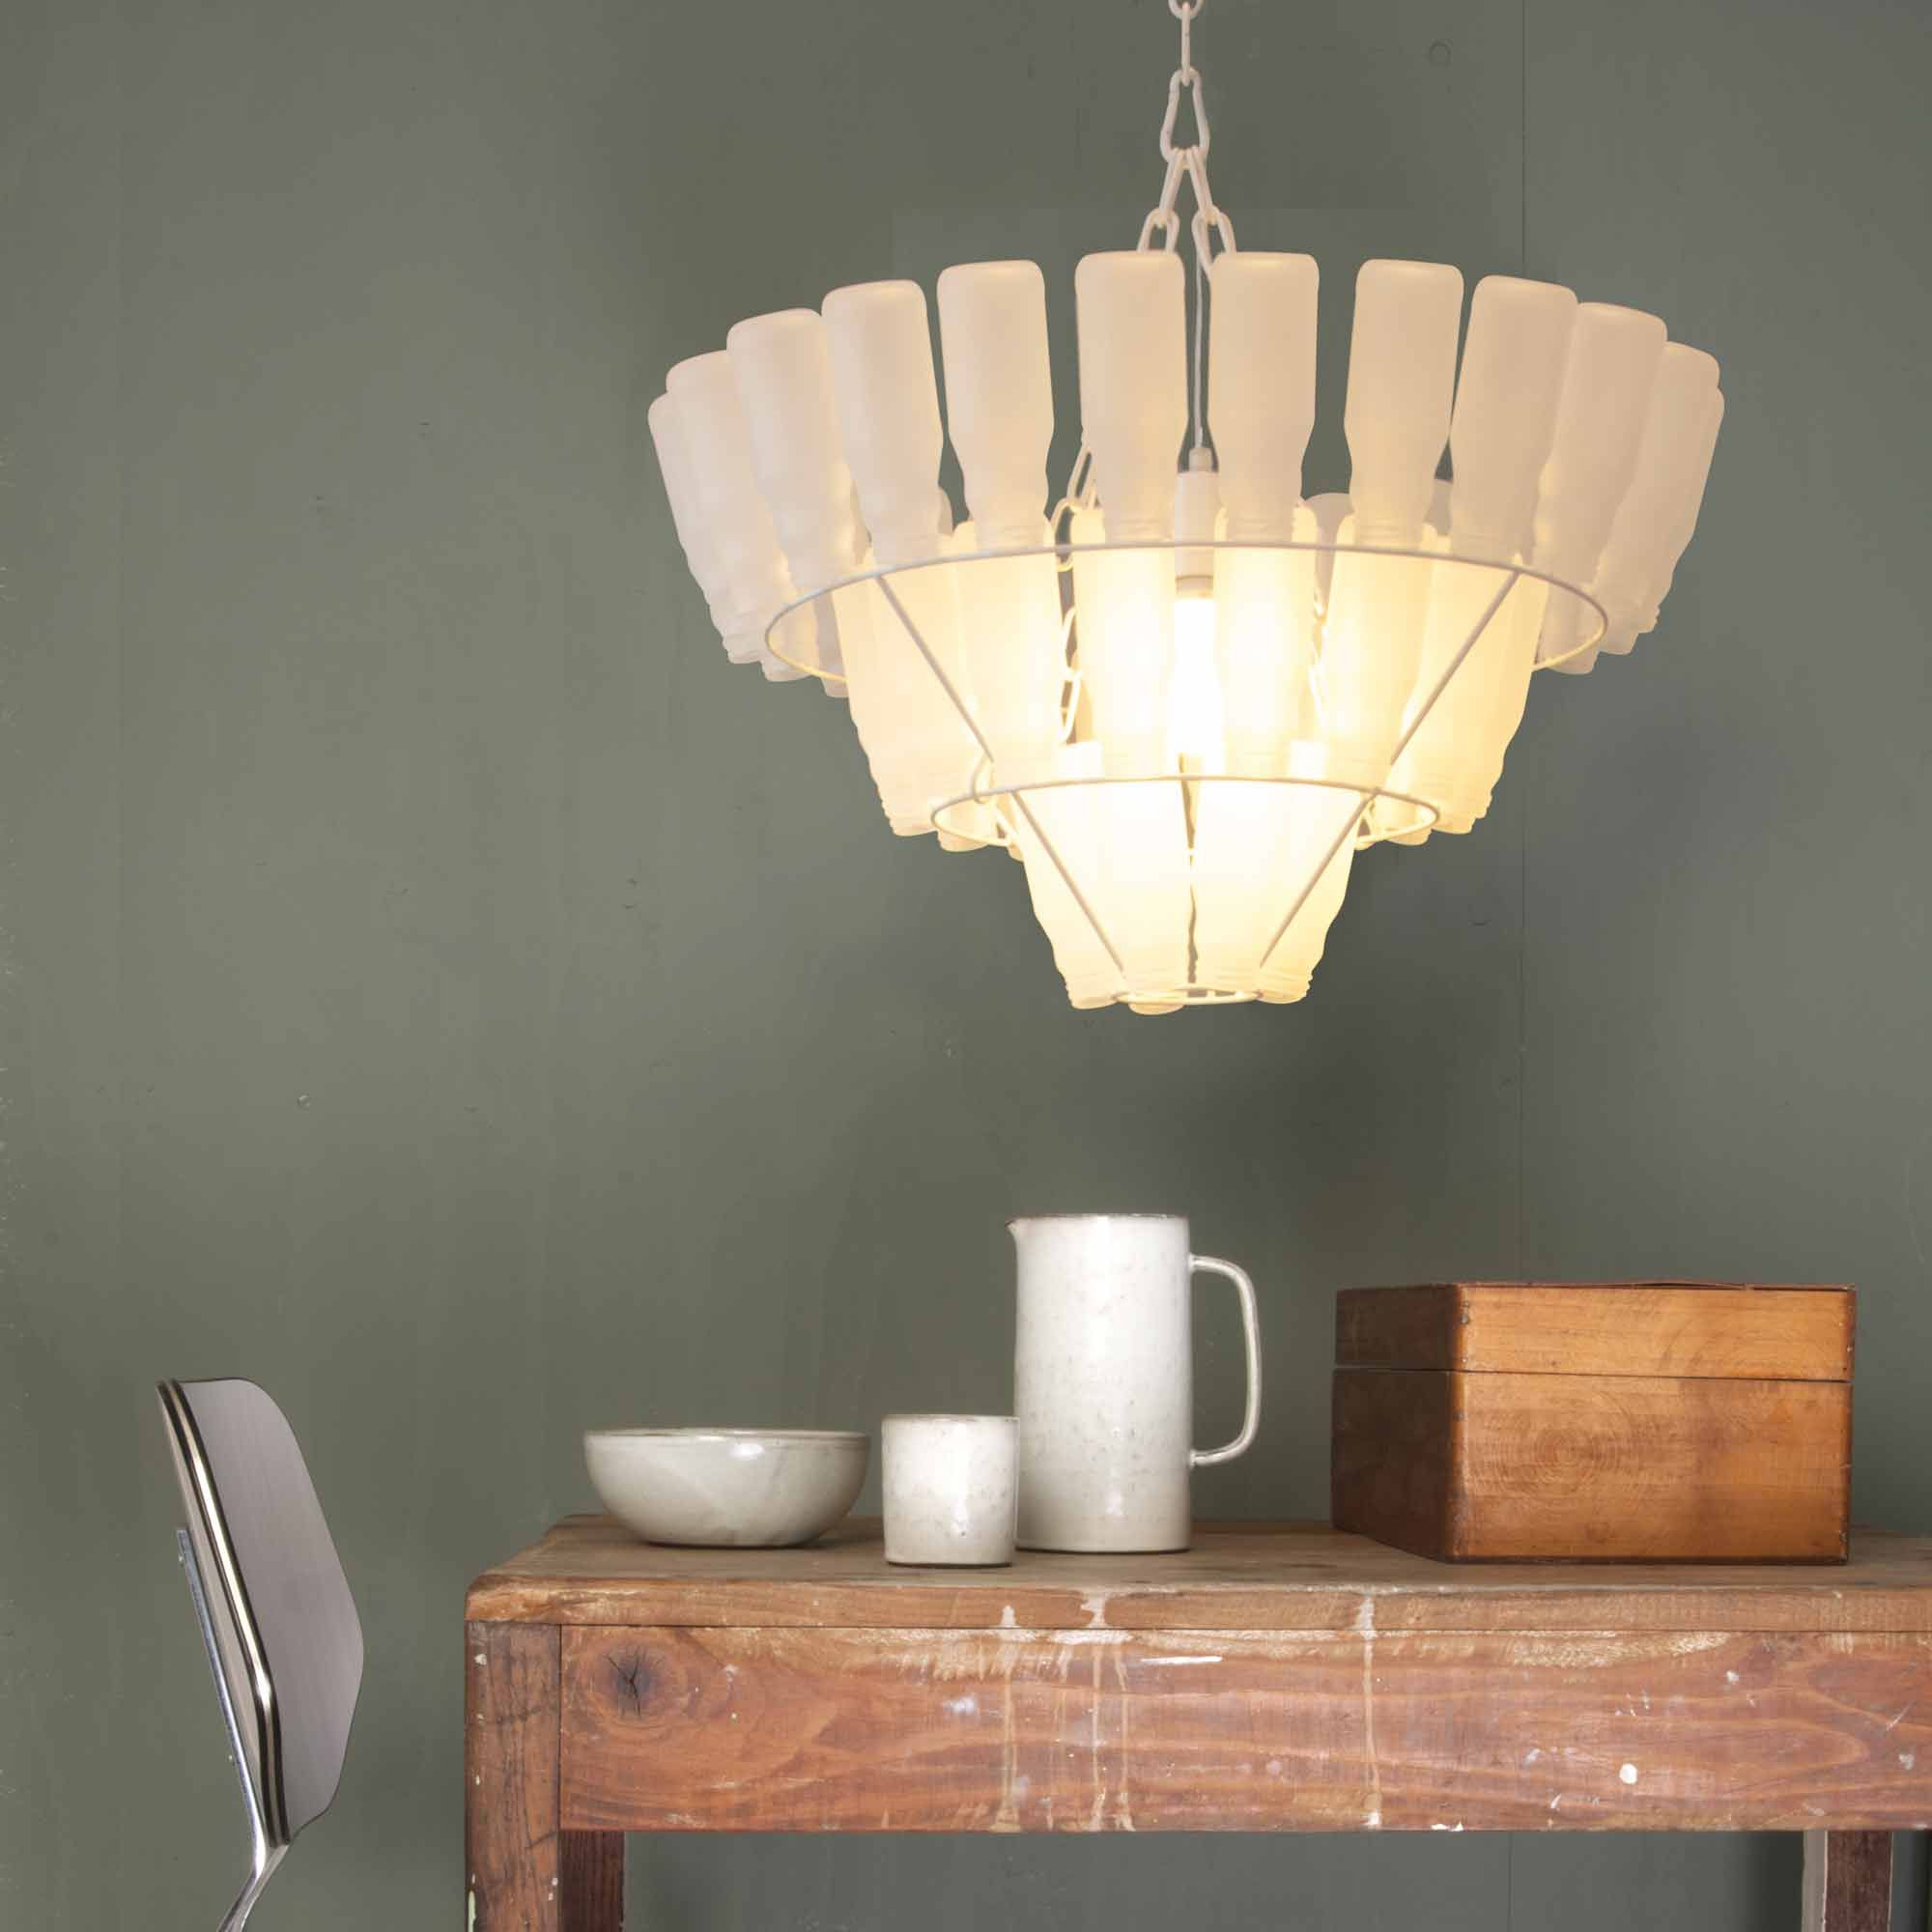 Recycled Lighting Fixtures